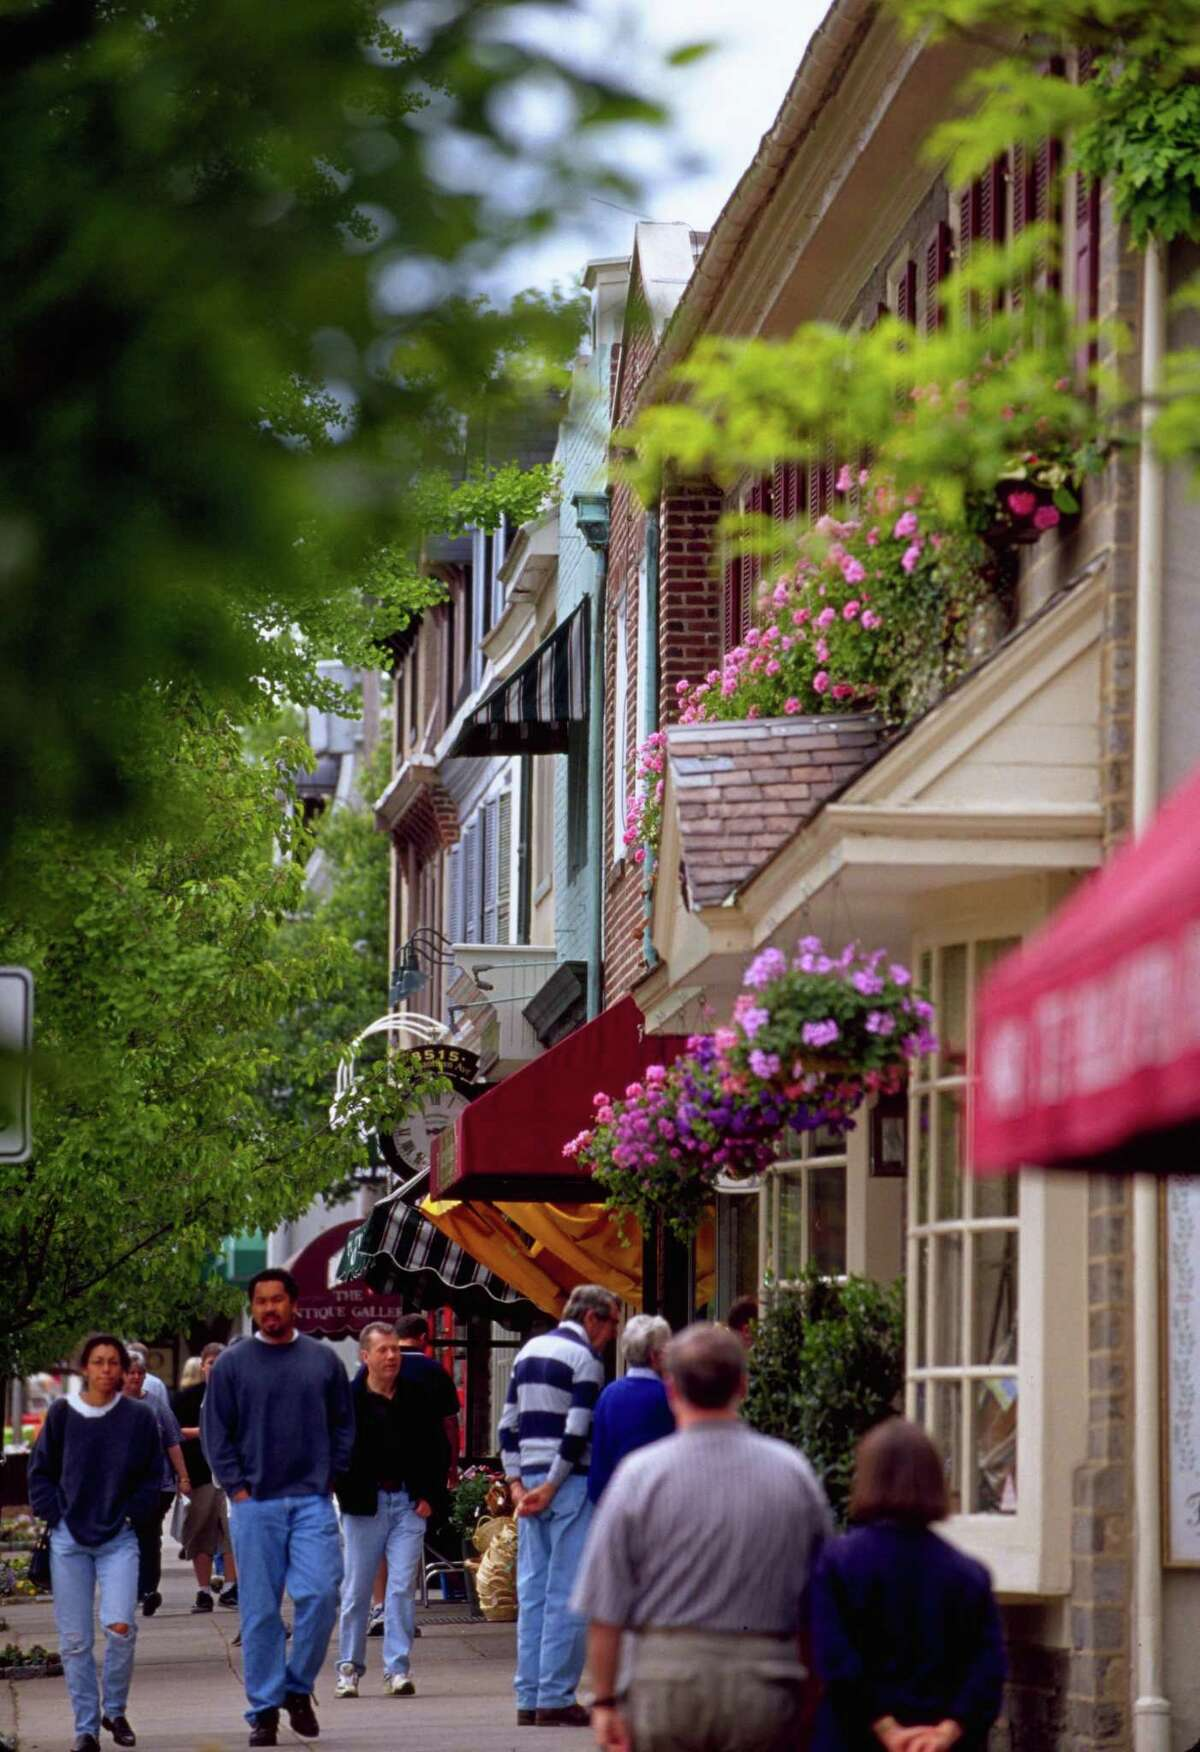 Germantown Avenue is the shopping and dining hub for Philadelphia's tony Chestnut Hill neighborhood located on the northwest edge of the city.